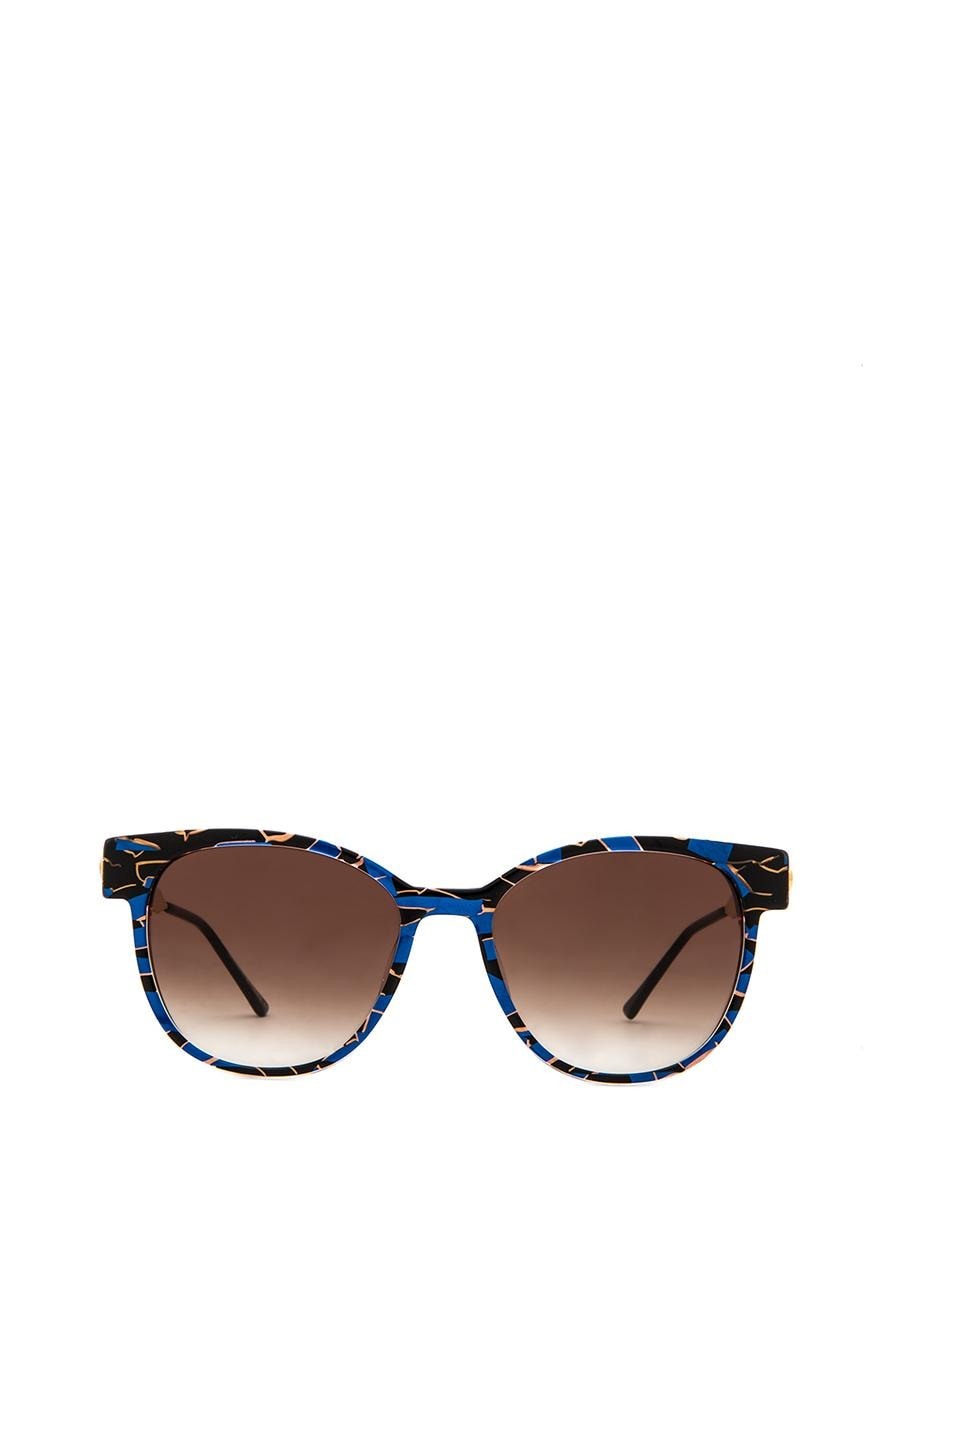 Thierry Lasry Perfidy Sunglasses in Blue Multi